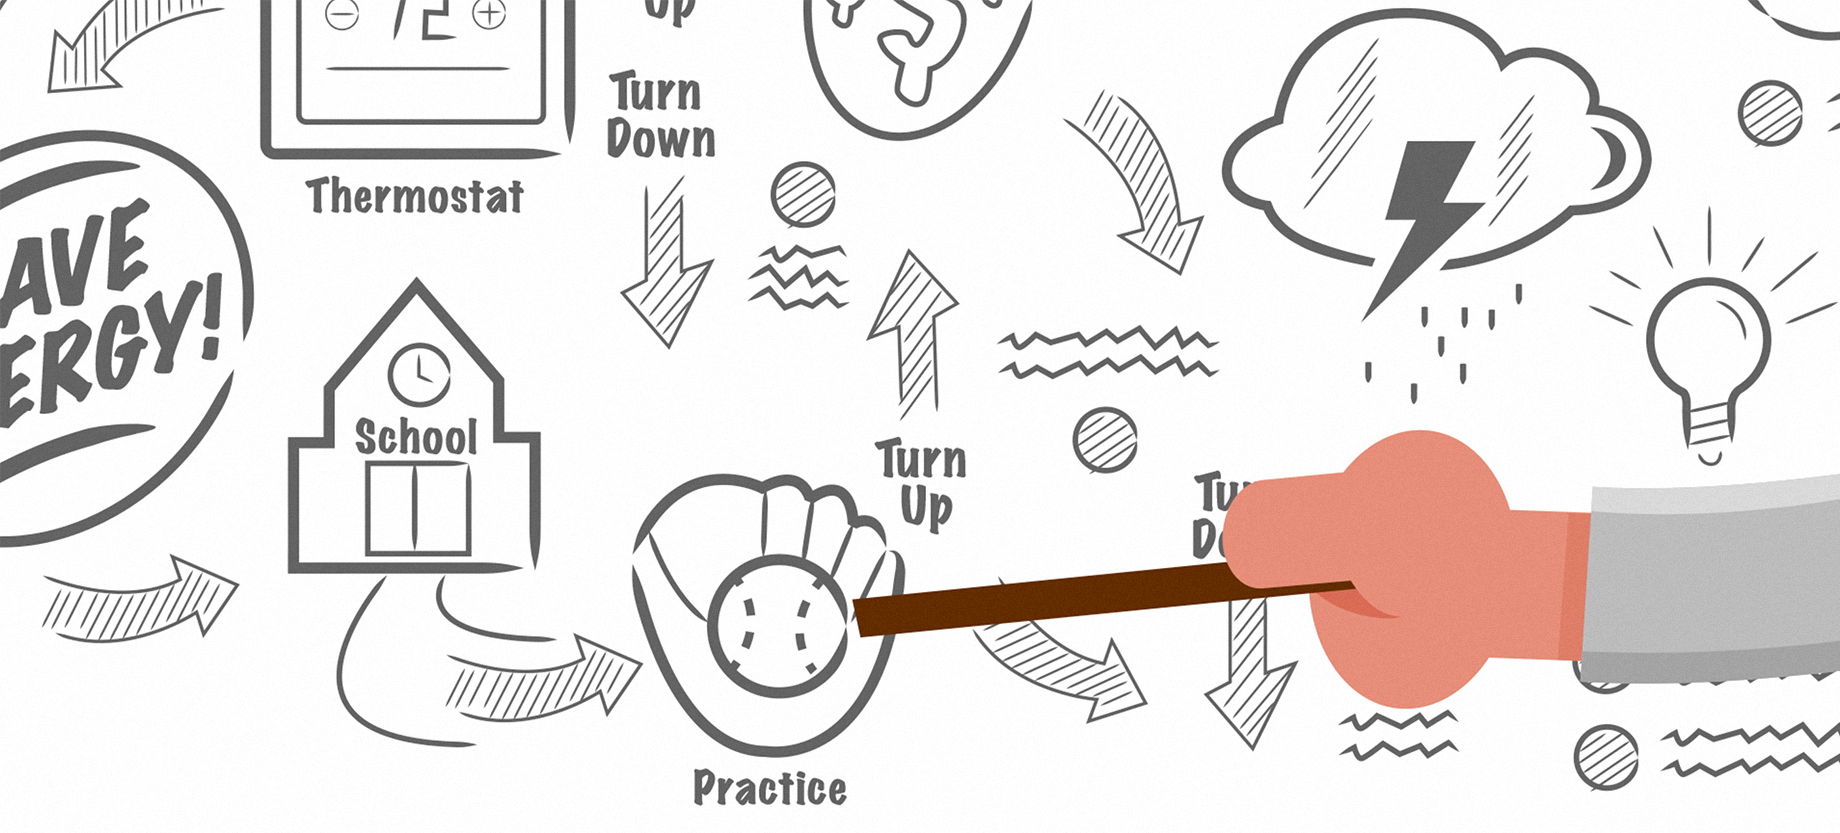 Illustration Animation For Power Hours